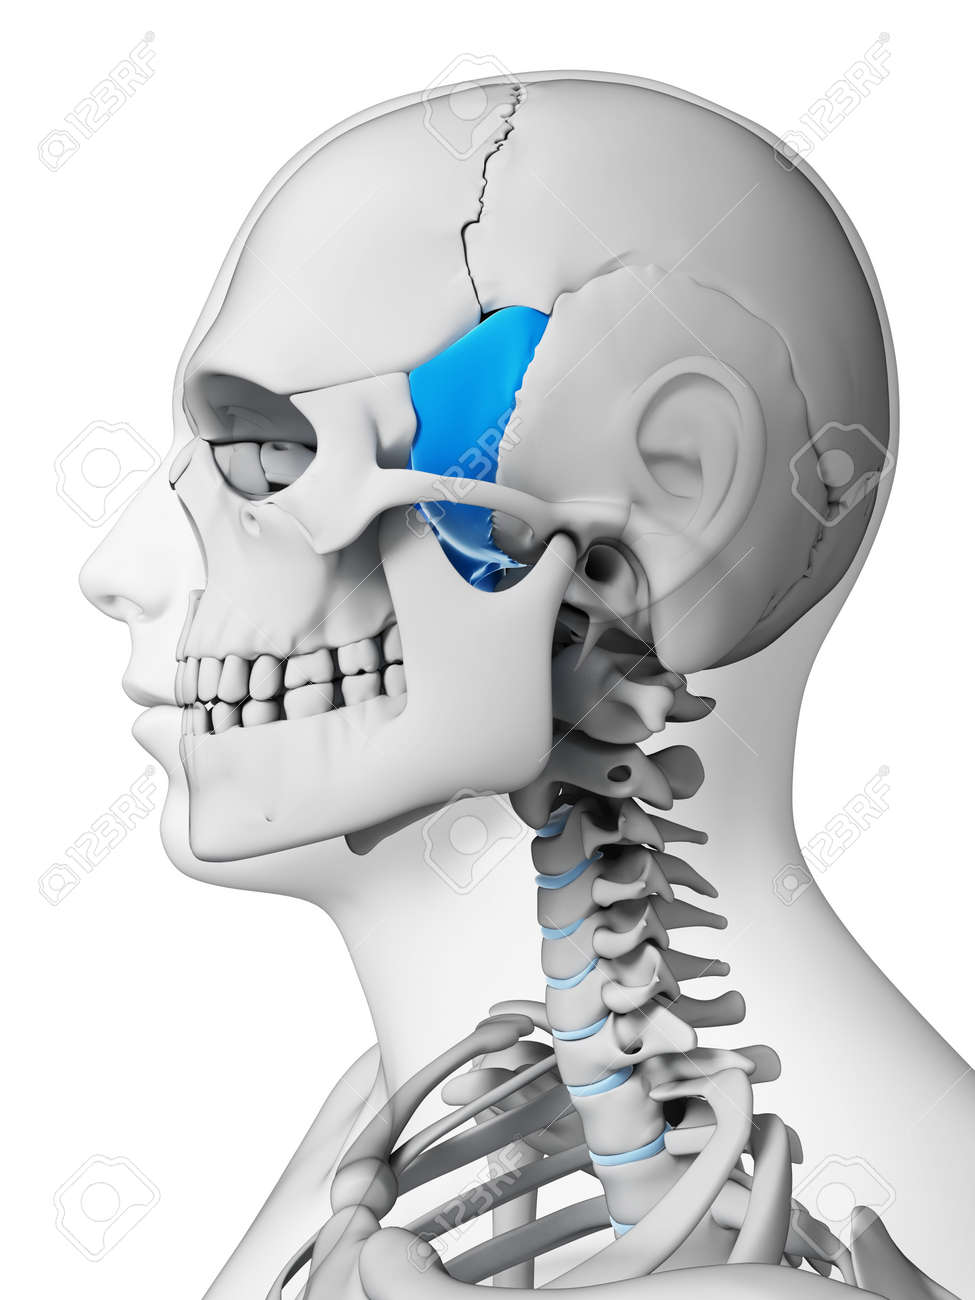 3d Rendered Illustration - Sphenoid Bone Stock Photo, Picture And ...